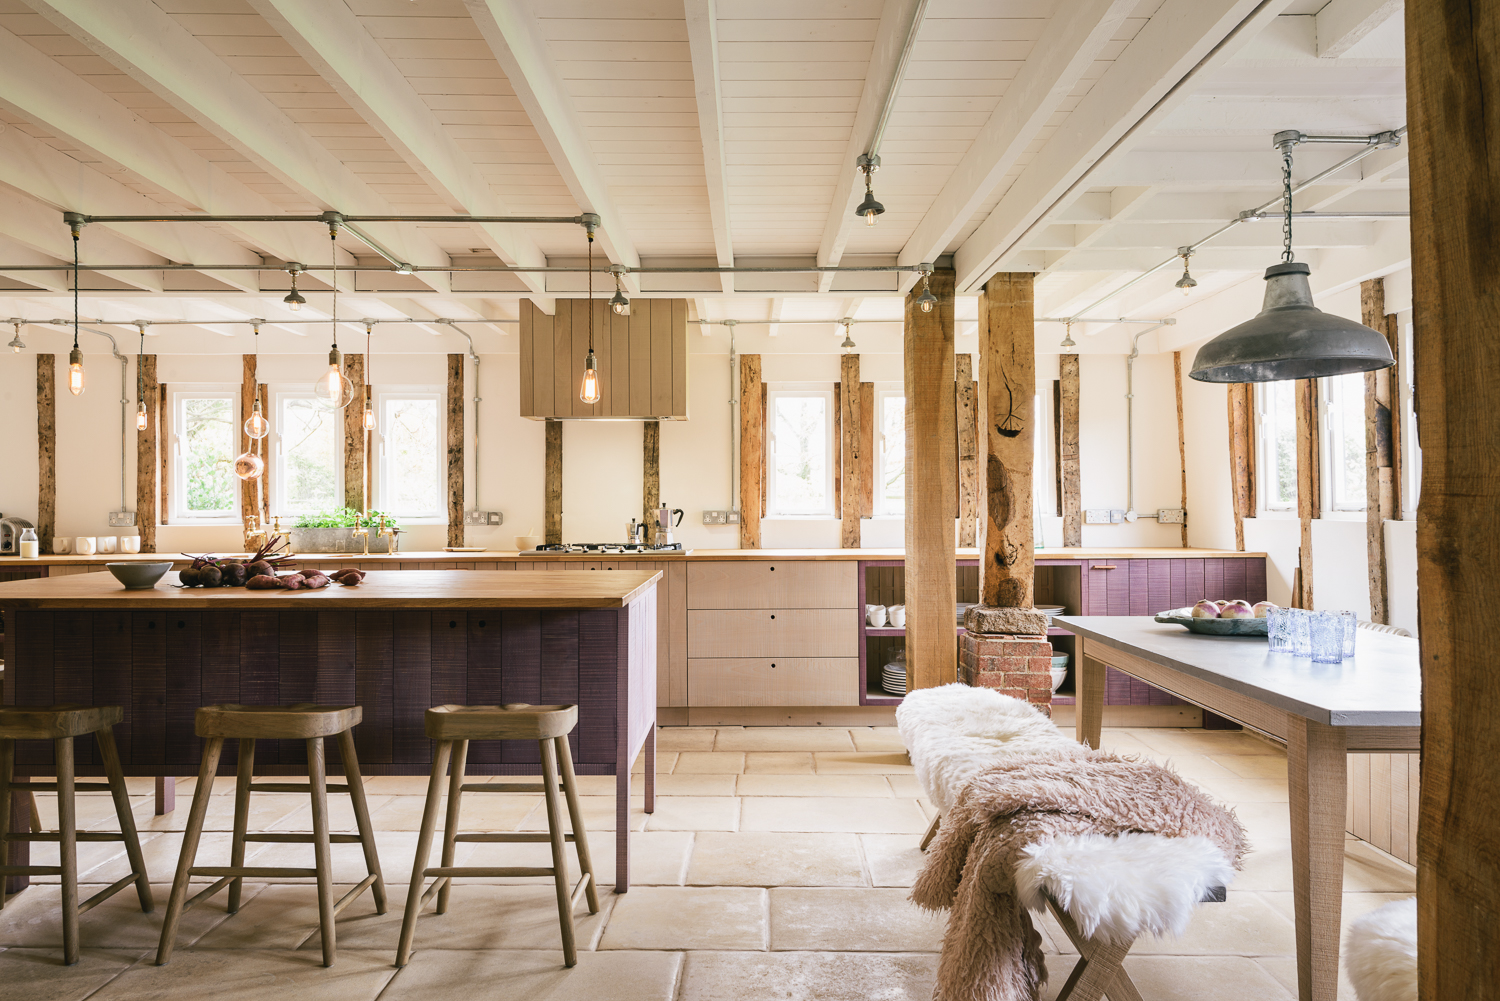 A bank of pendants employed above a kitchen island